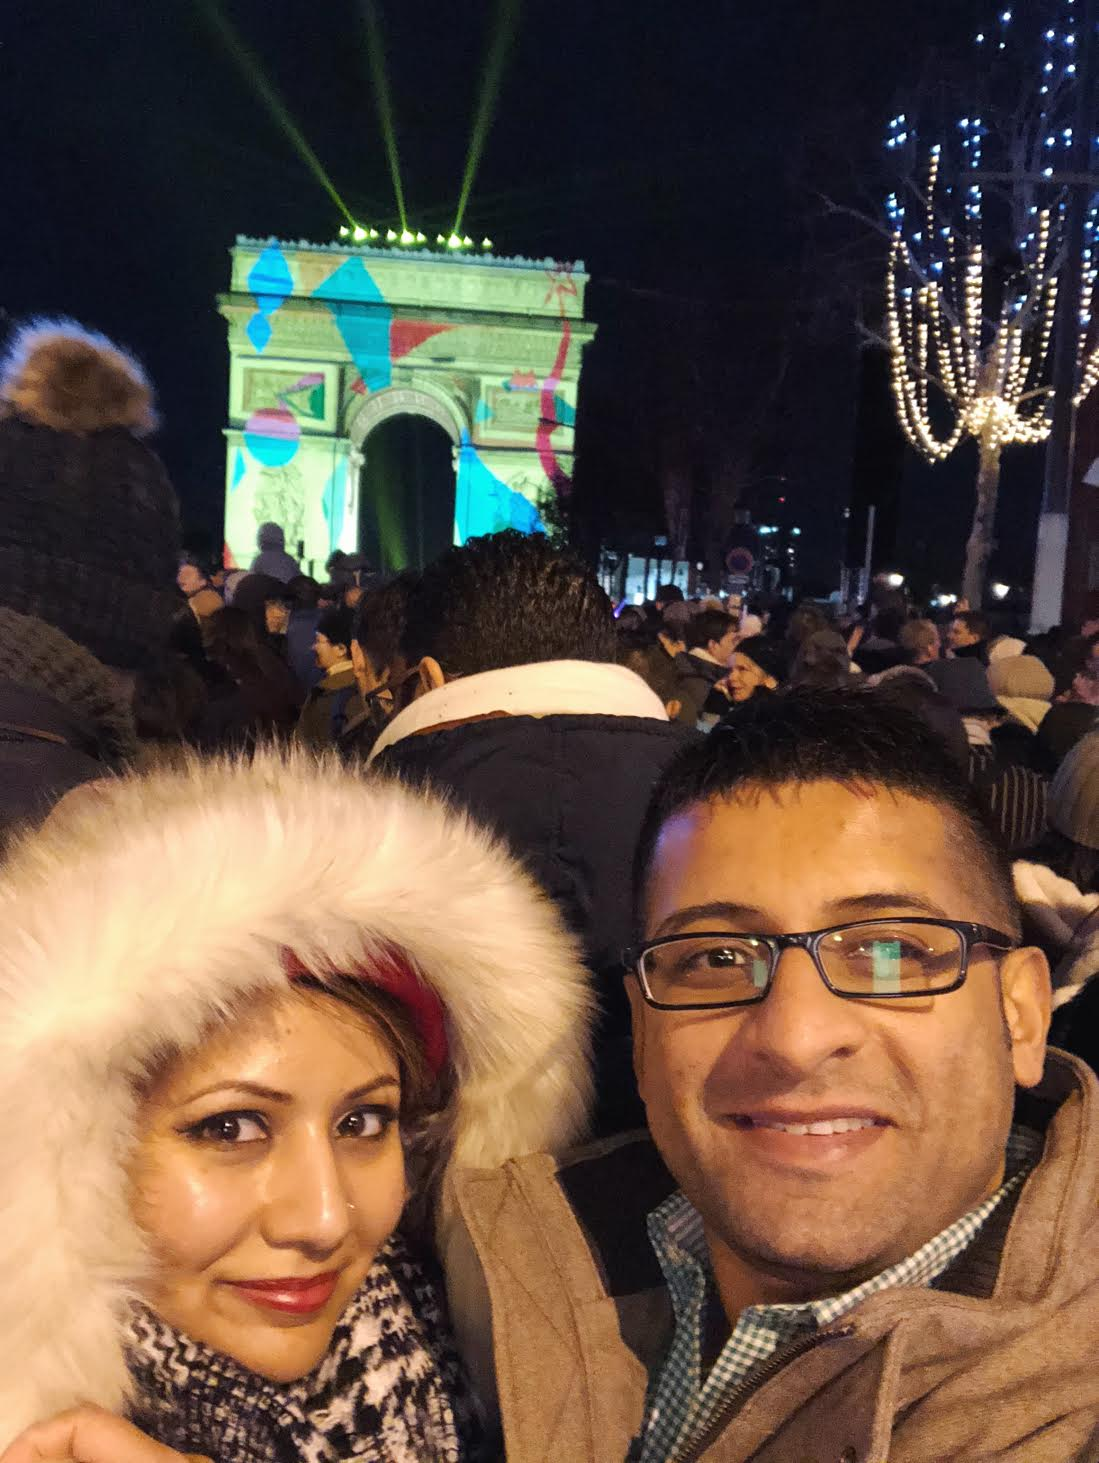 Muslim-travel-tips-Paris-New-Years-Eve-Arc-de-Triomphe.jpg